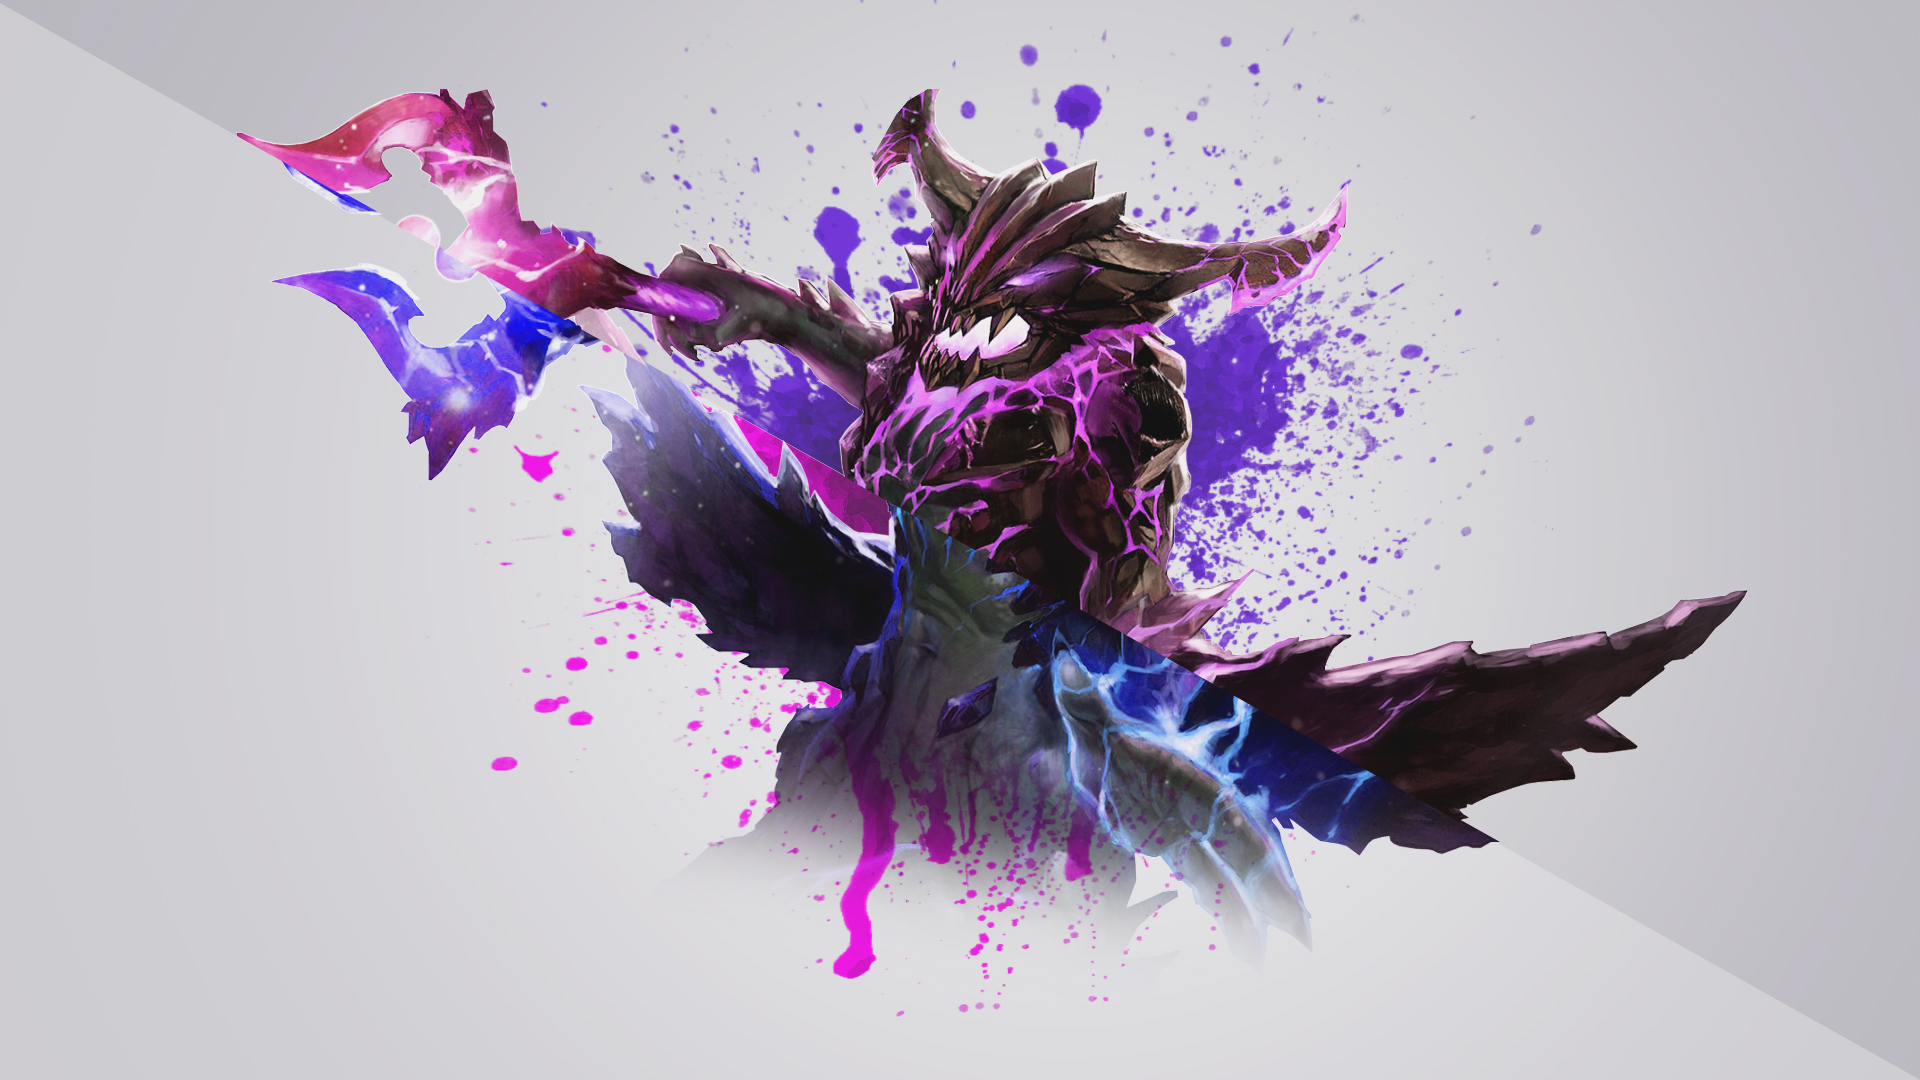 free dota 2 outworld devourer wallpaper 1920x1080 by dandapixel on